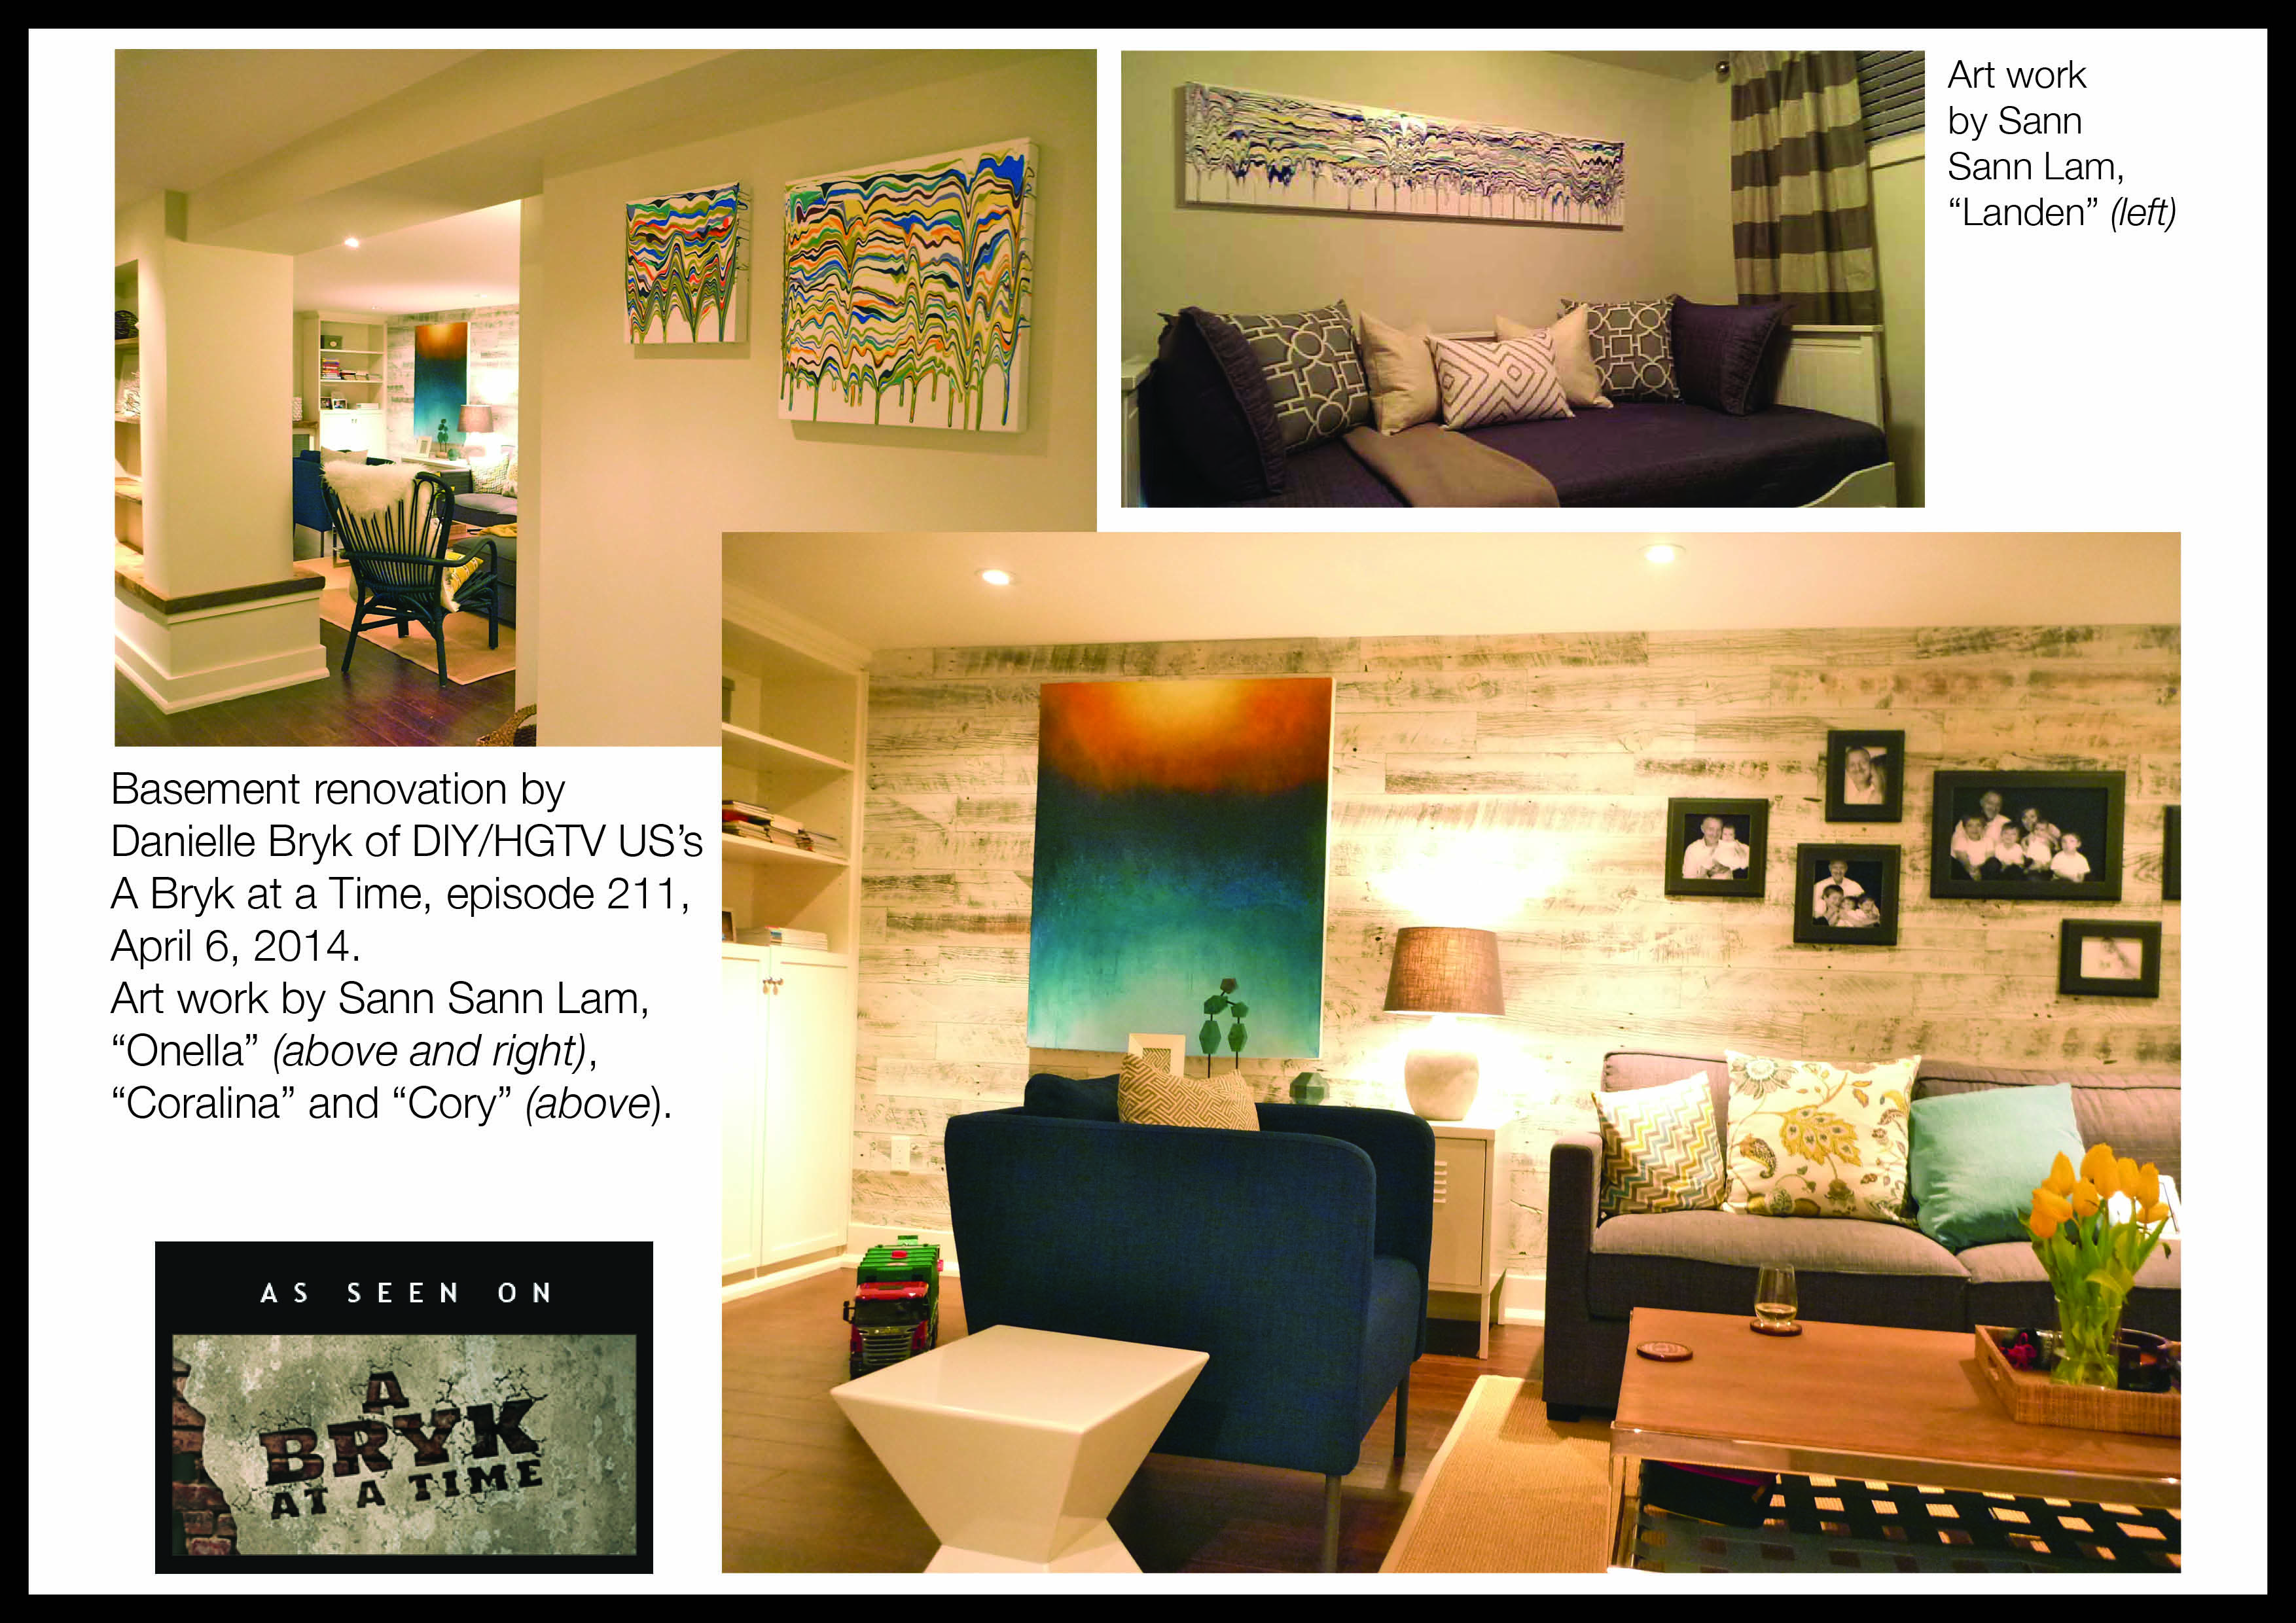 'A Bryk at a Time' on HGTV